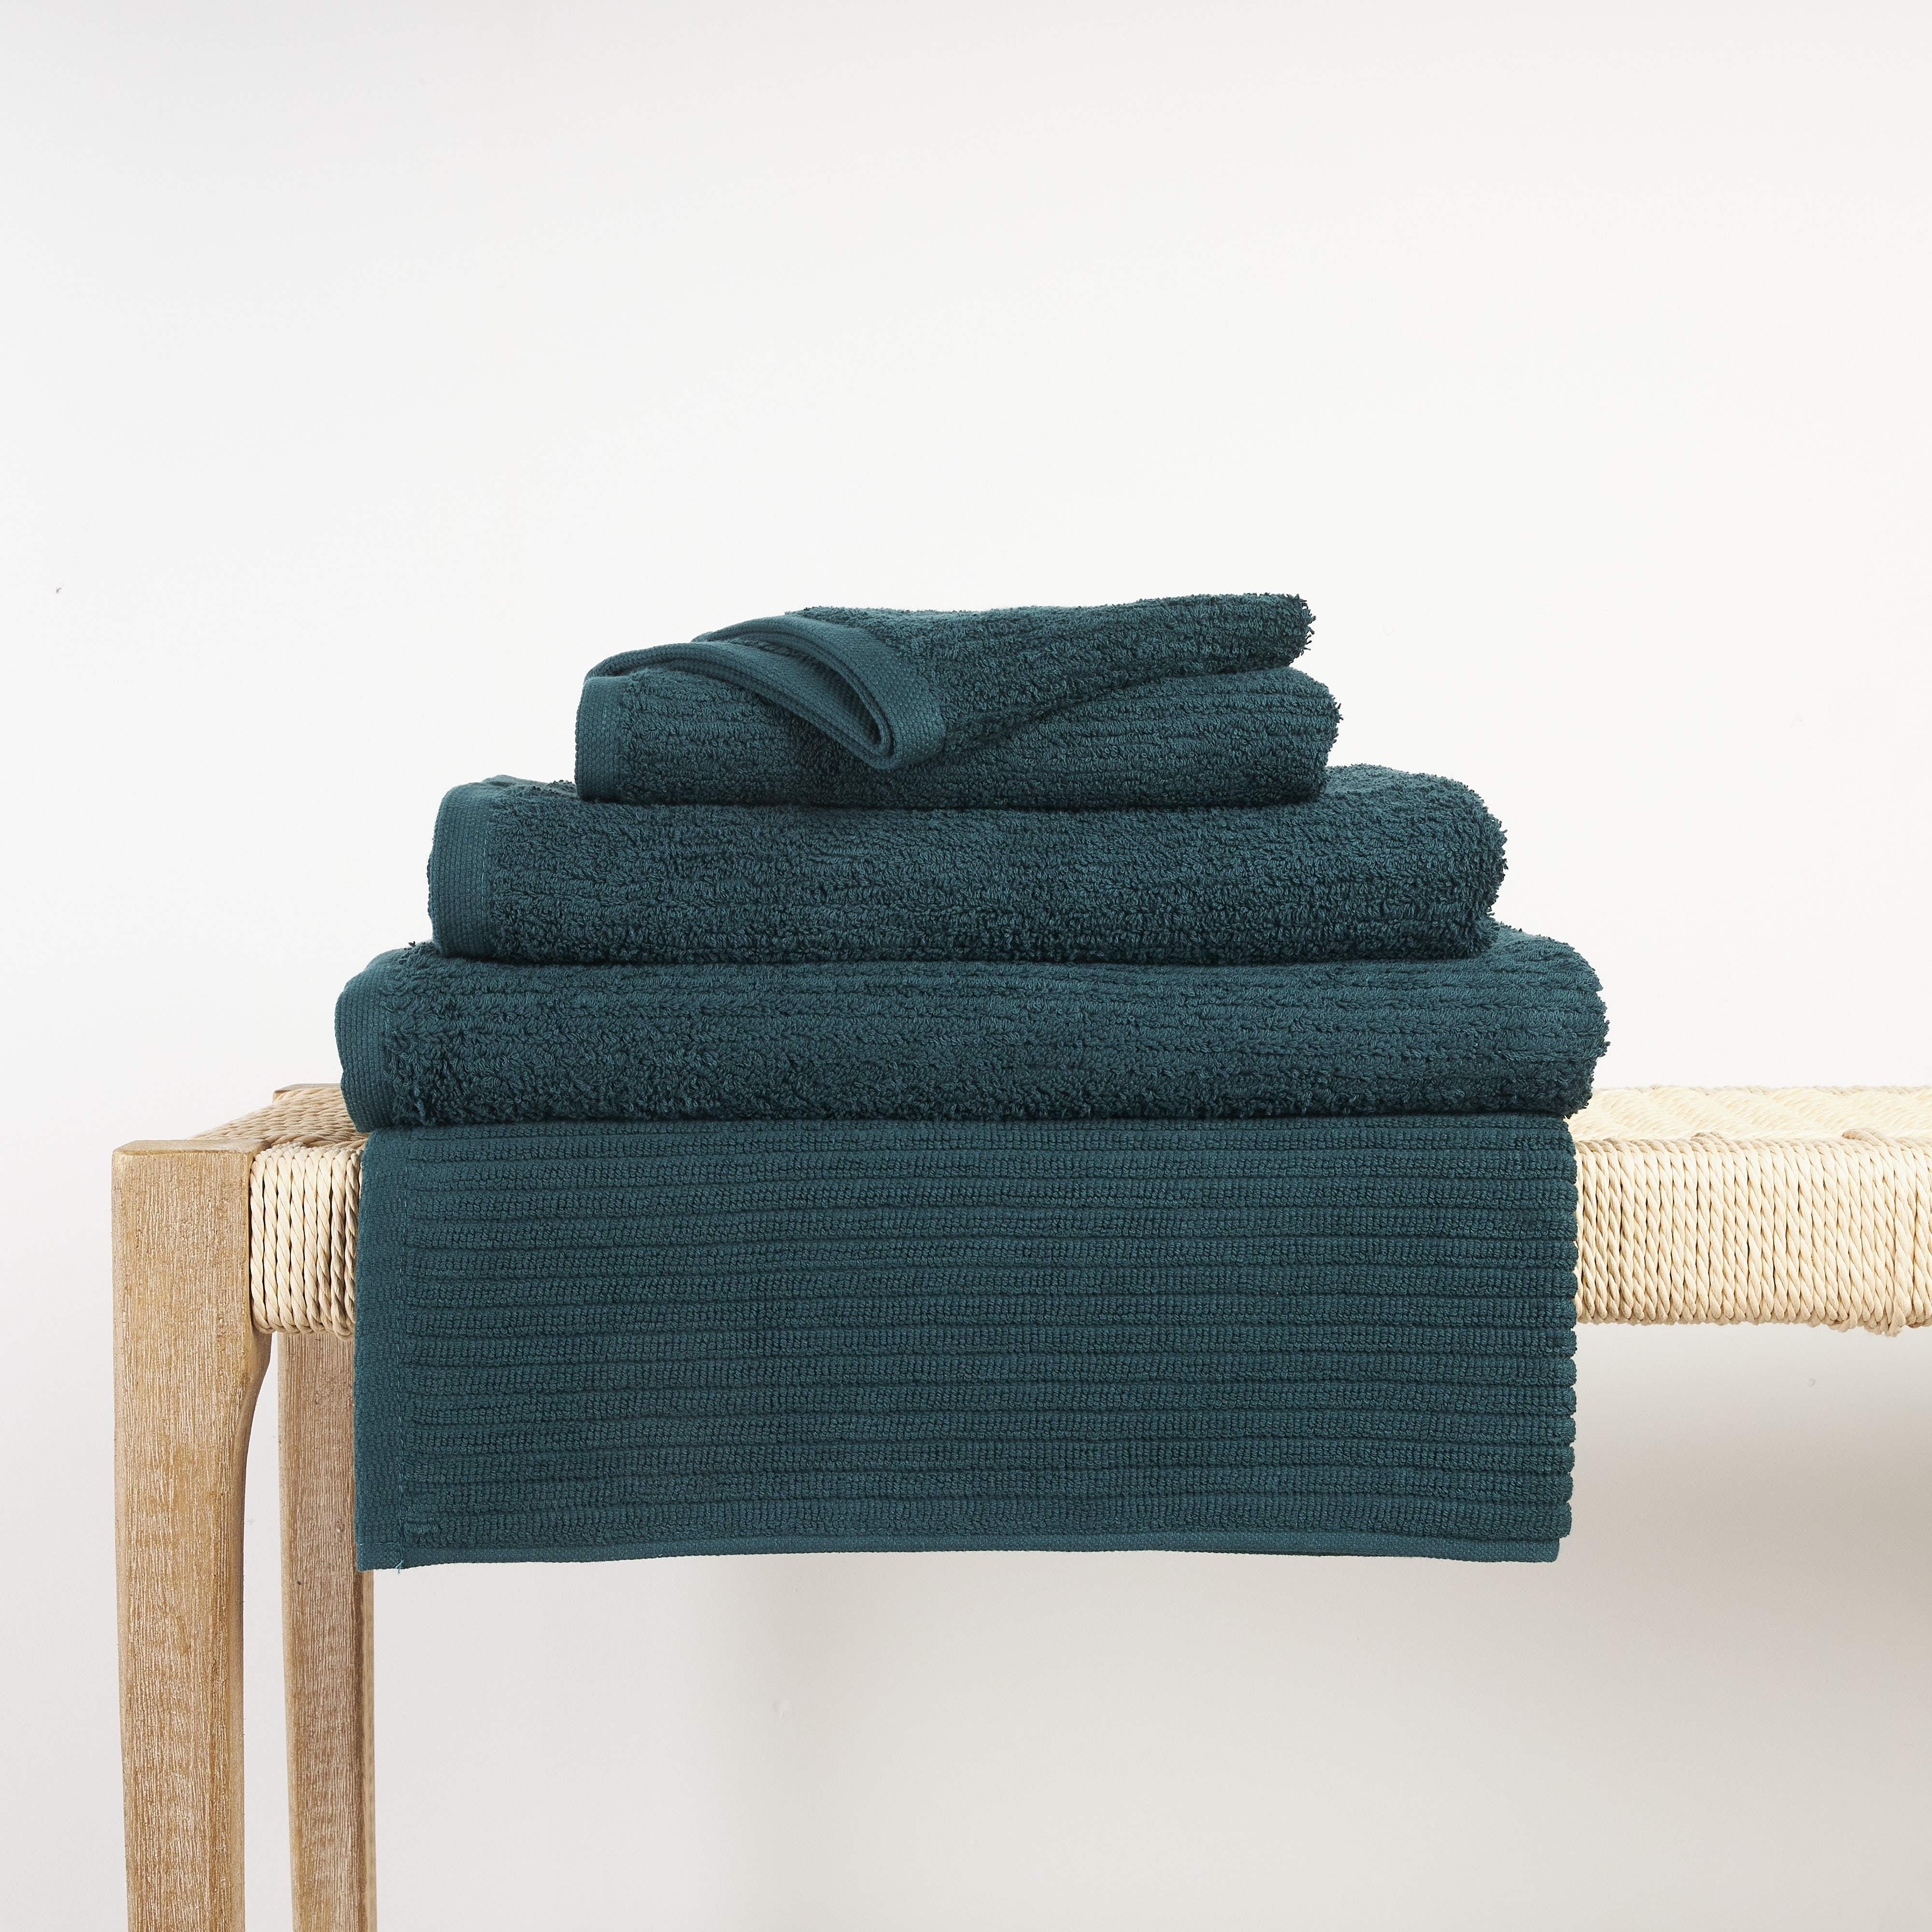 In2linen Classic Egyptian Cotton Ribbed Towel   Teal Green